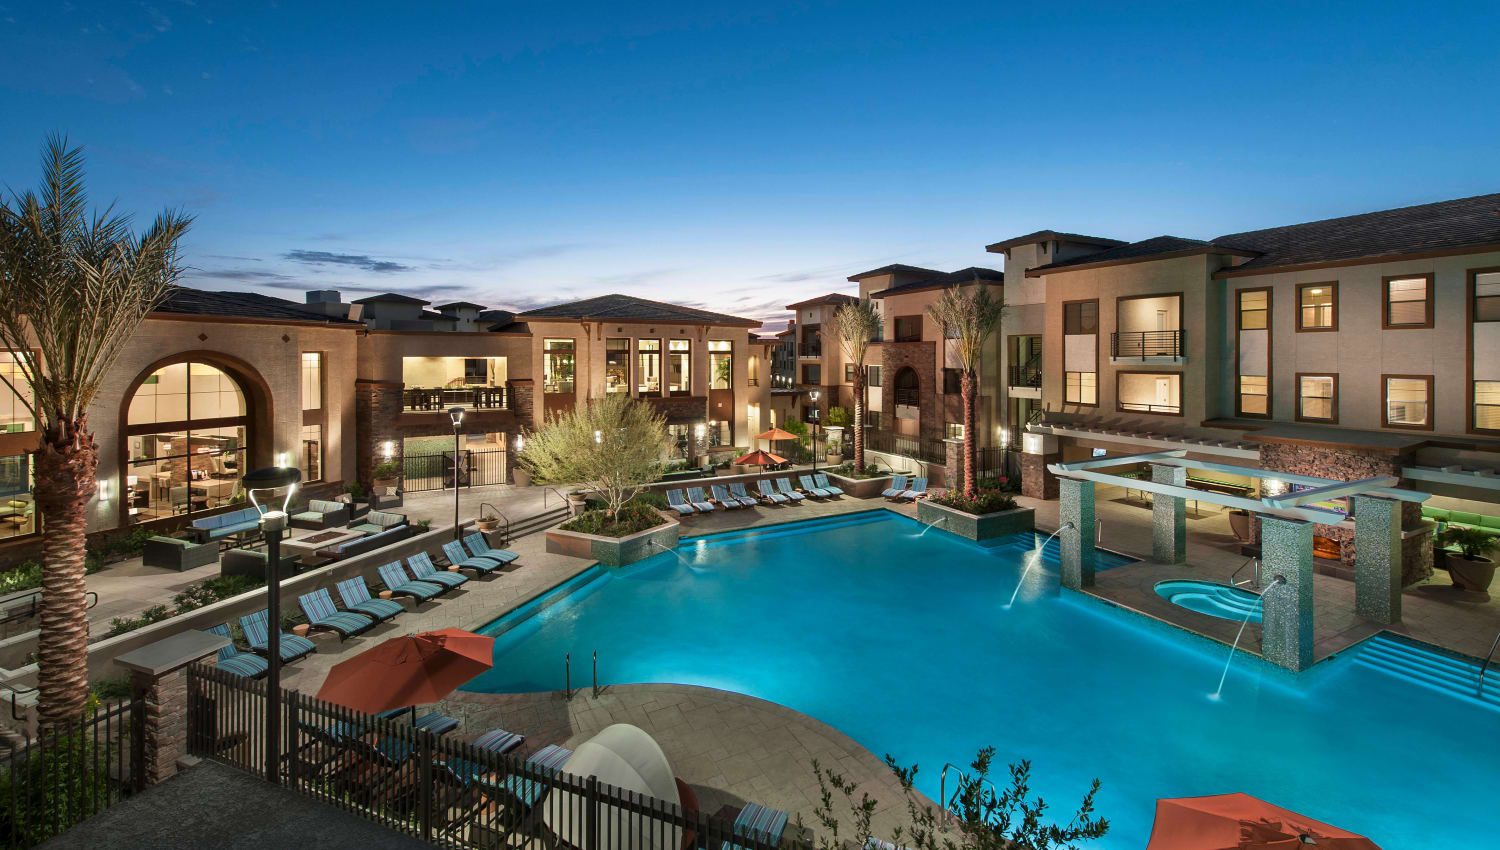 View of the pool area at dusk from an upper-floor home at Redstone at SanTan Village in Gilbert, Arizona